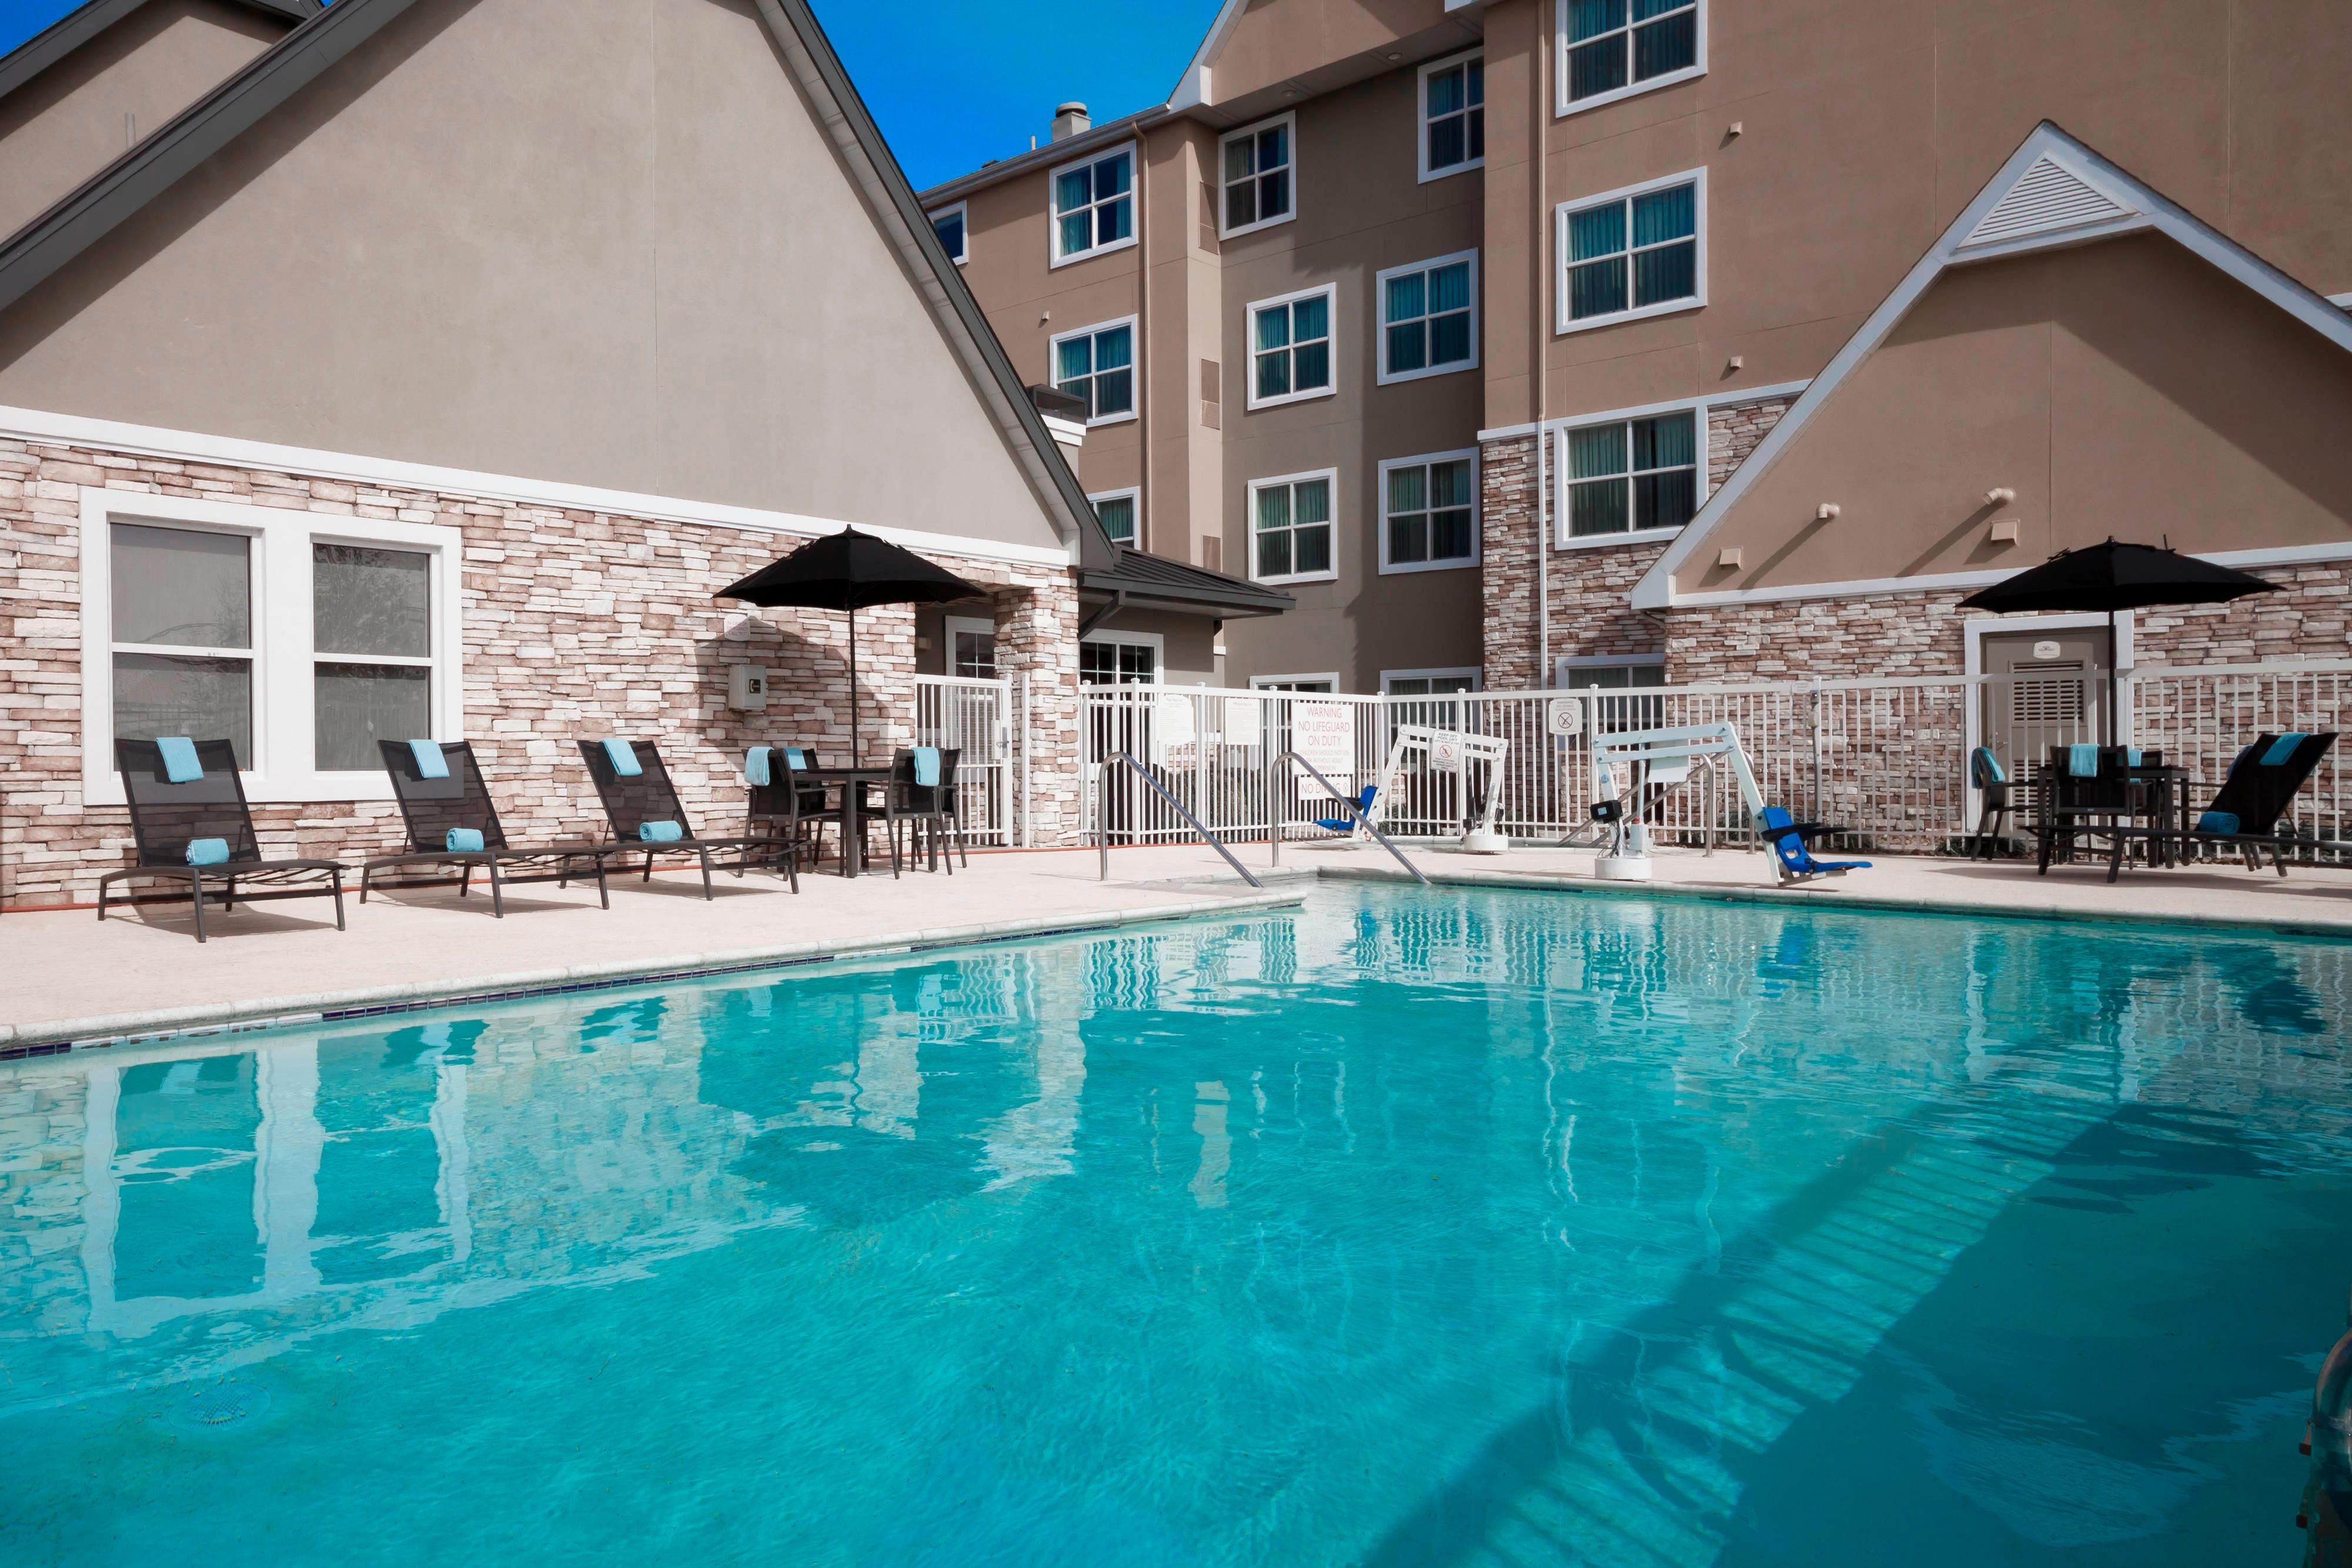 San Antonio Hotel Outdoor Pool